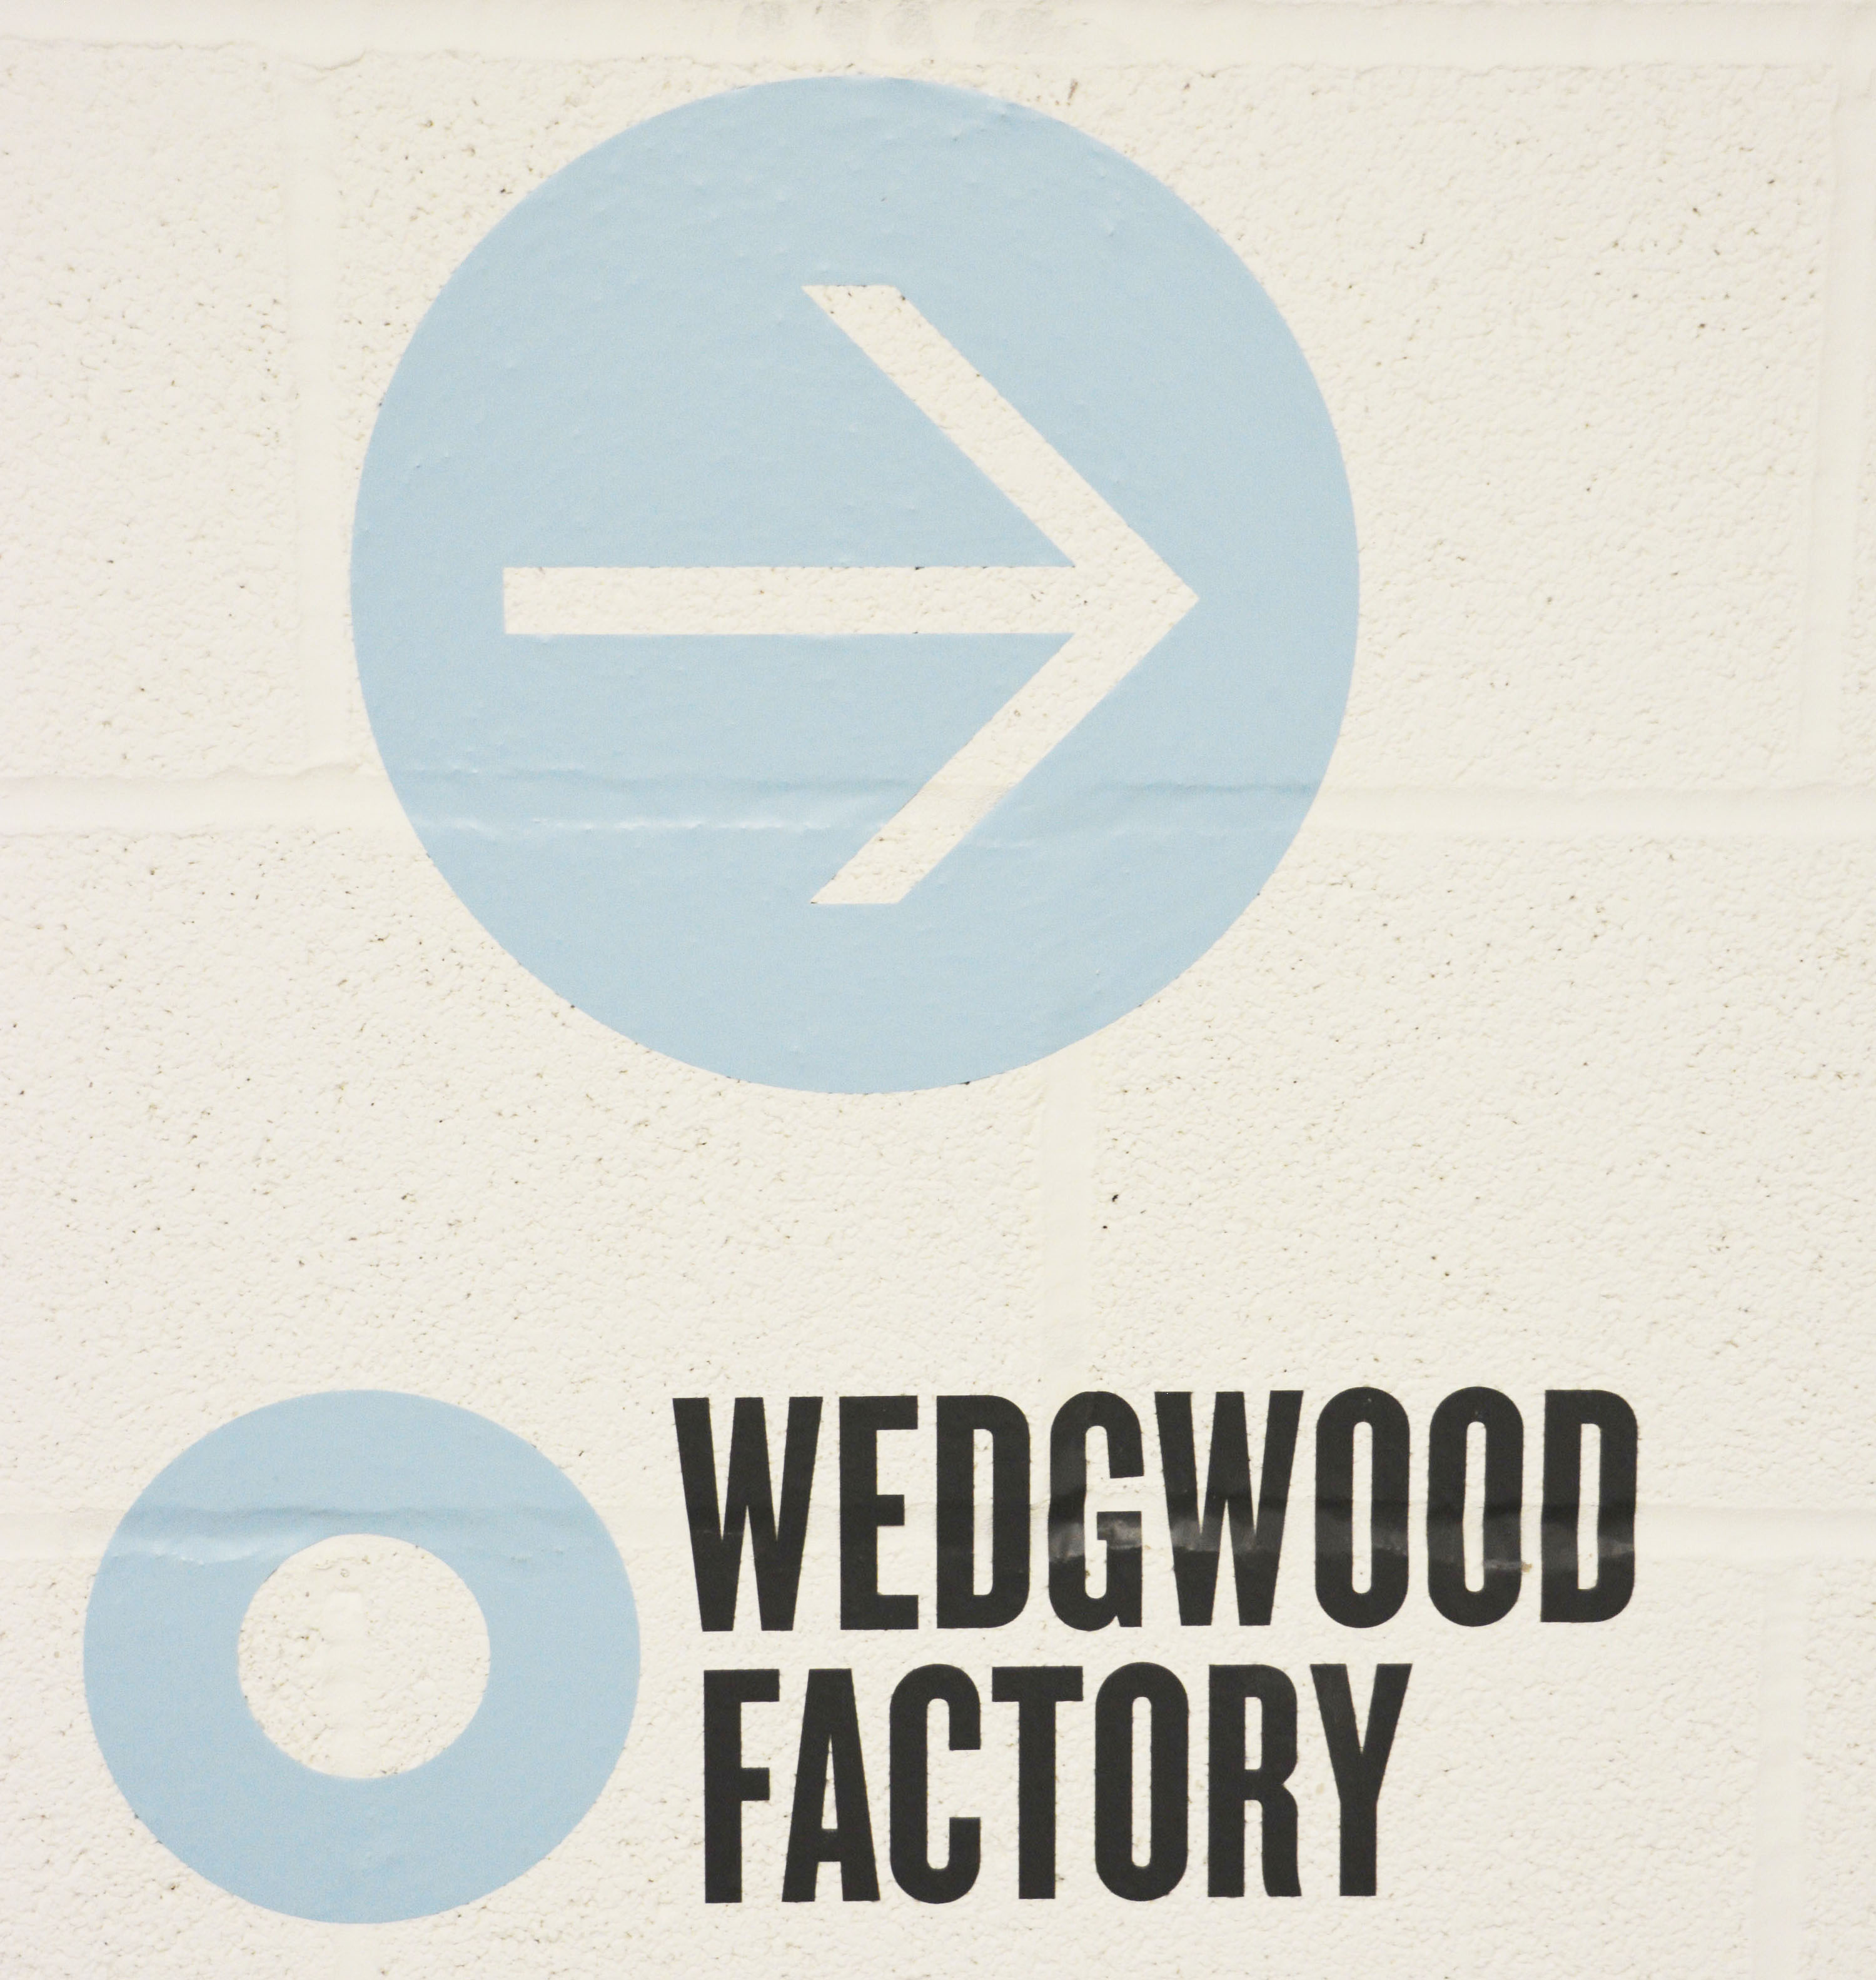 The Wedgwood Factory